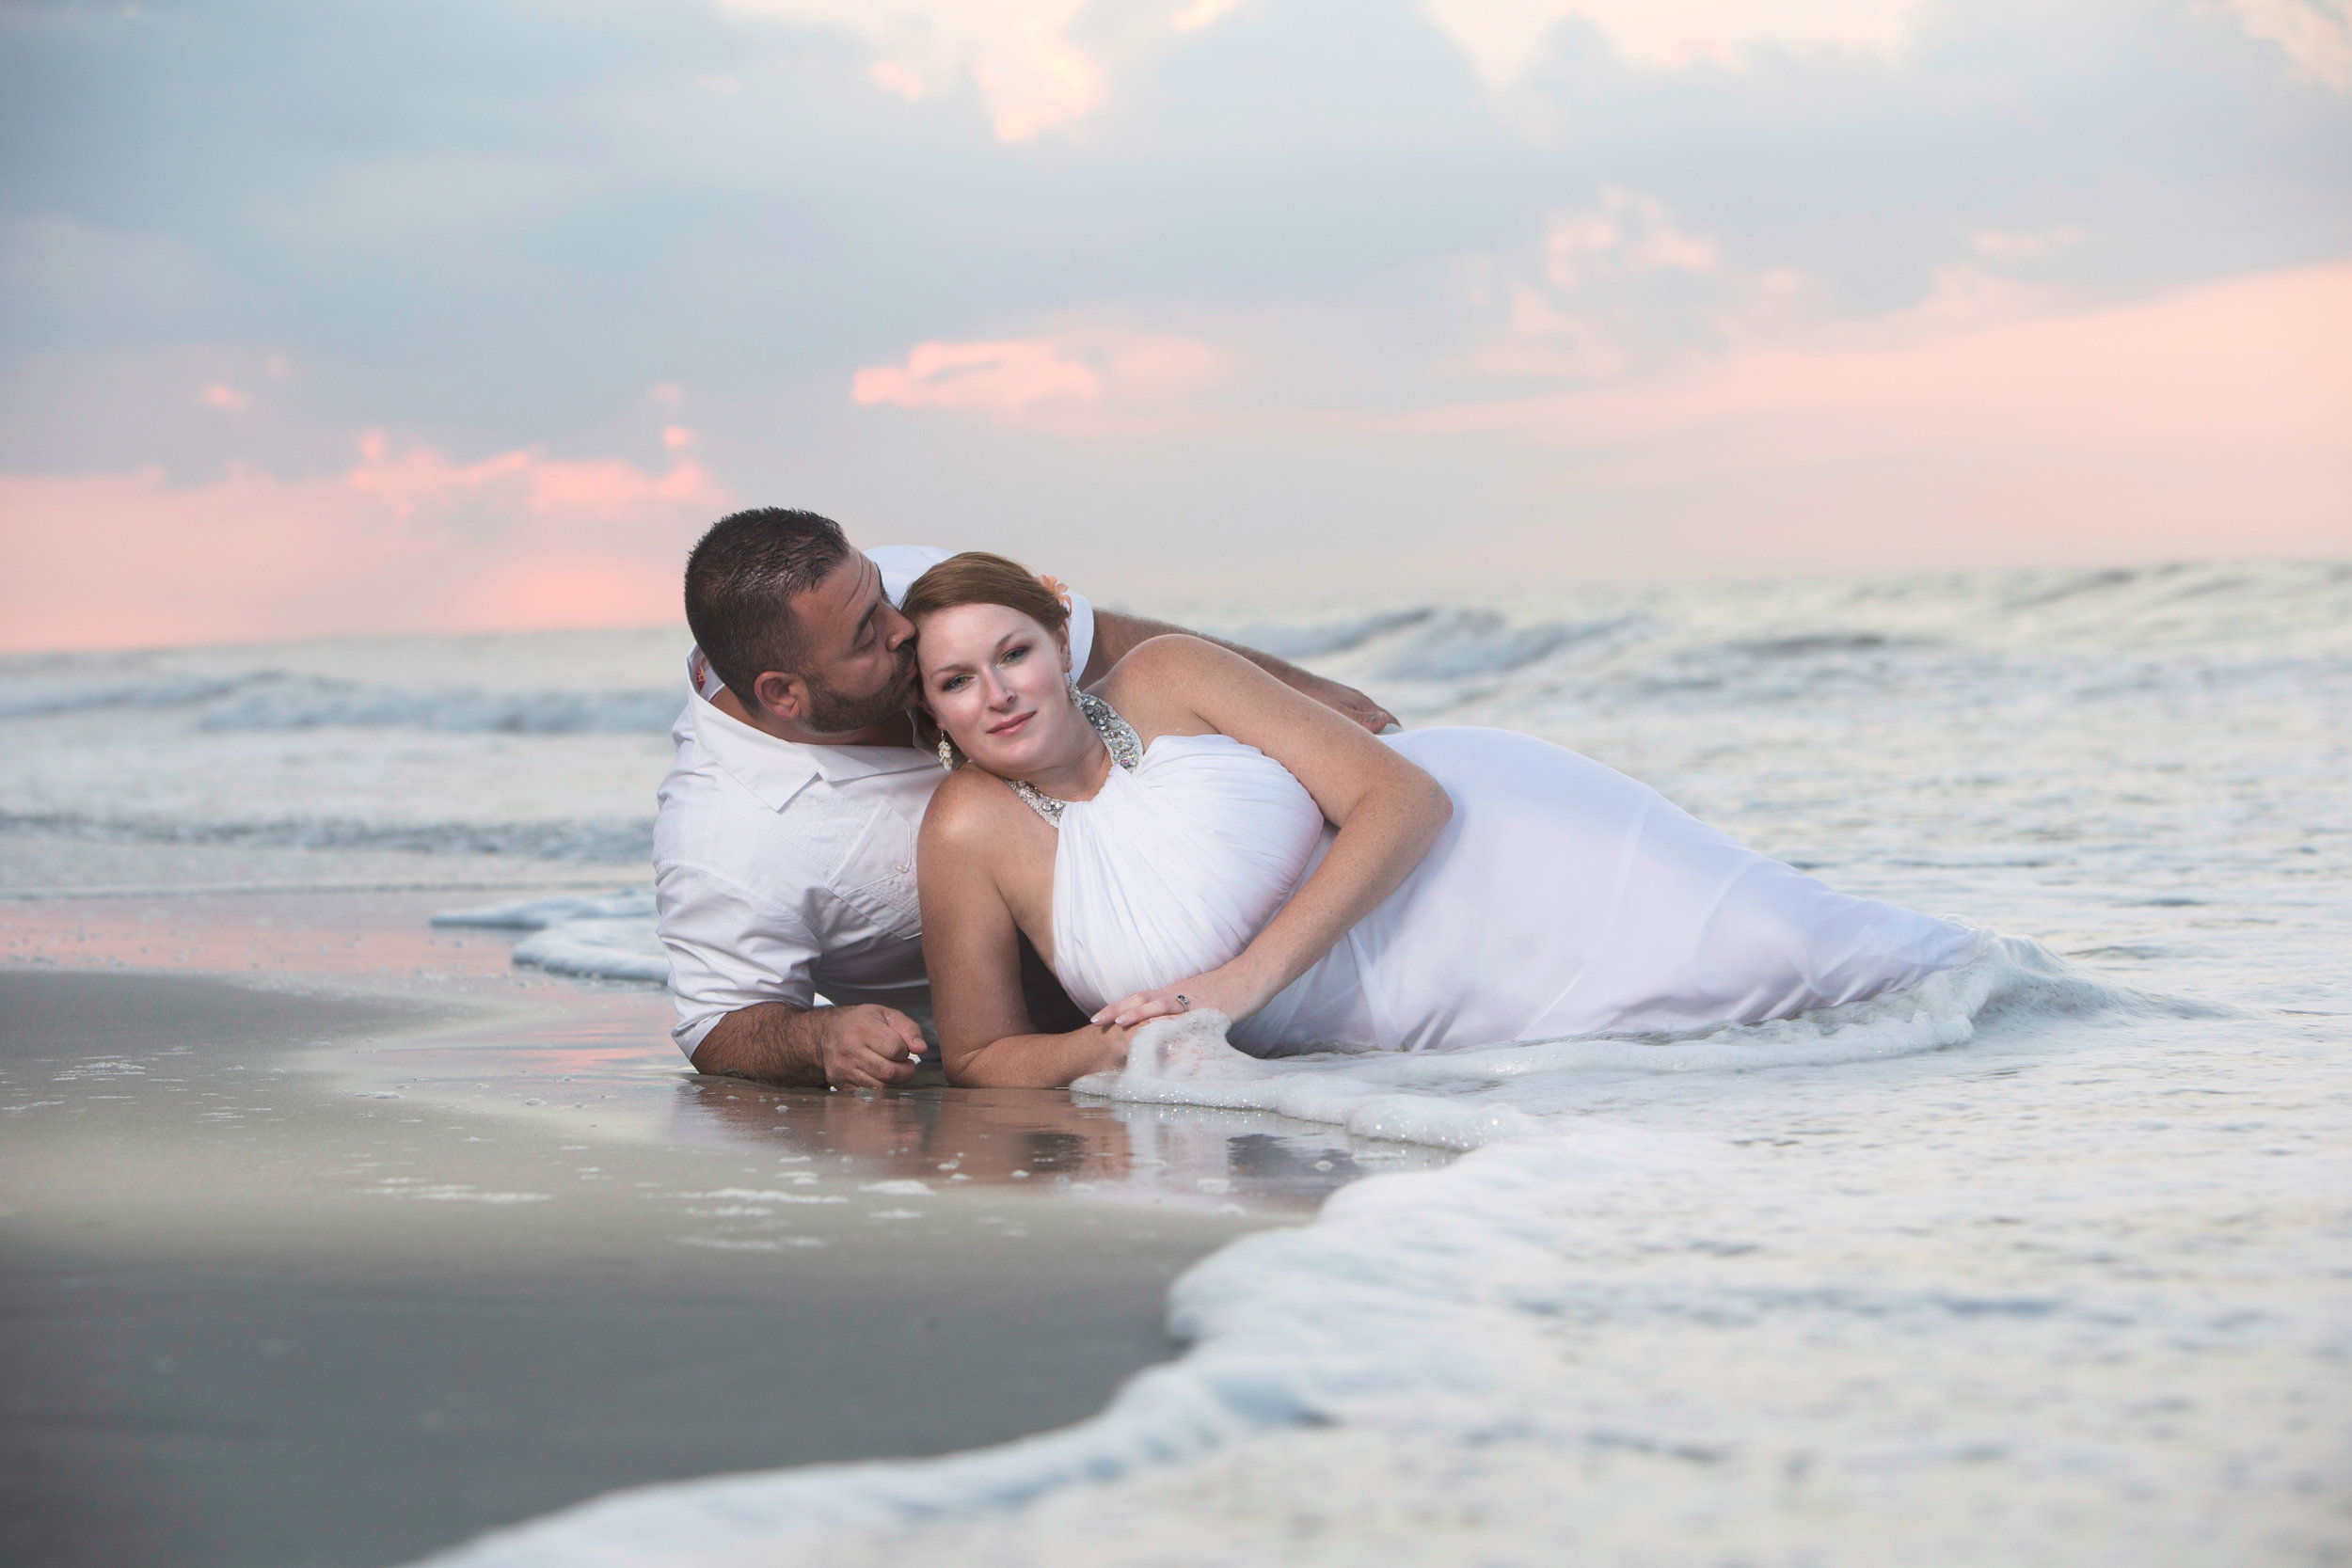 Couple lays on the beach in the tide while the husband kisses his wifes forehead